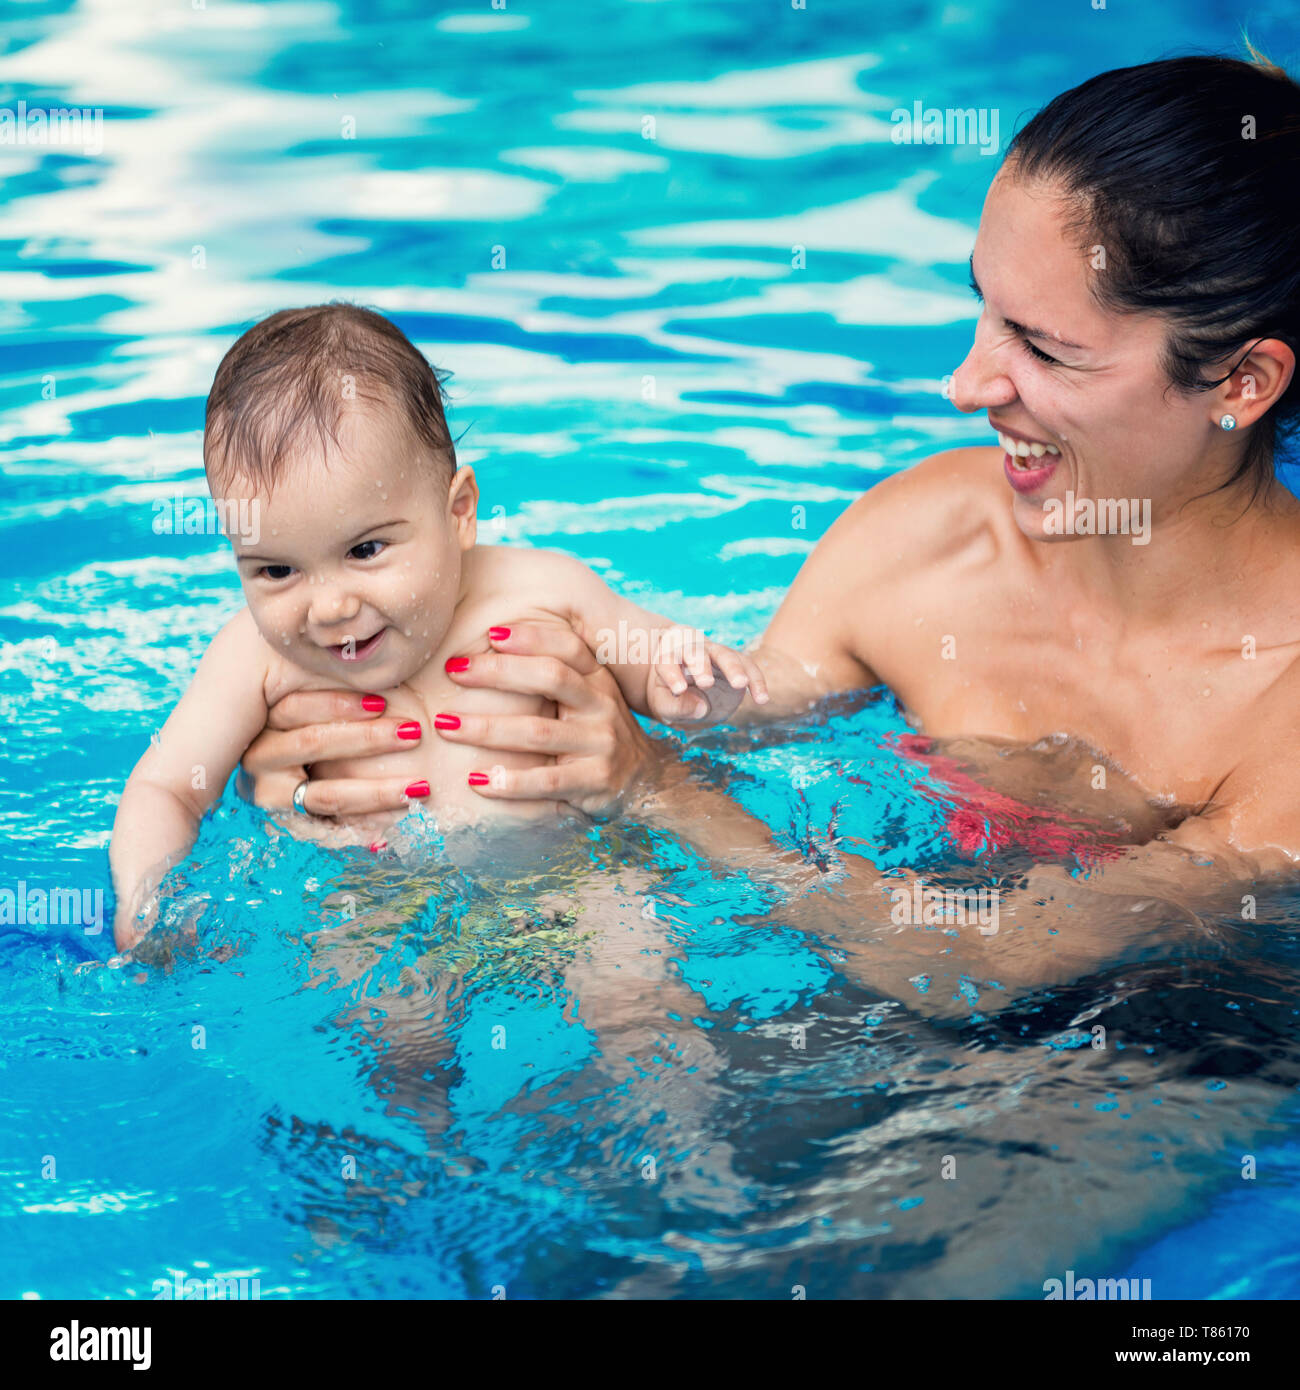 Baby boy and mother in swimming pool - Stock Image